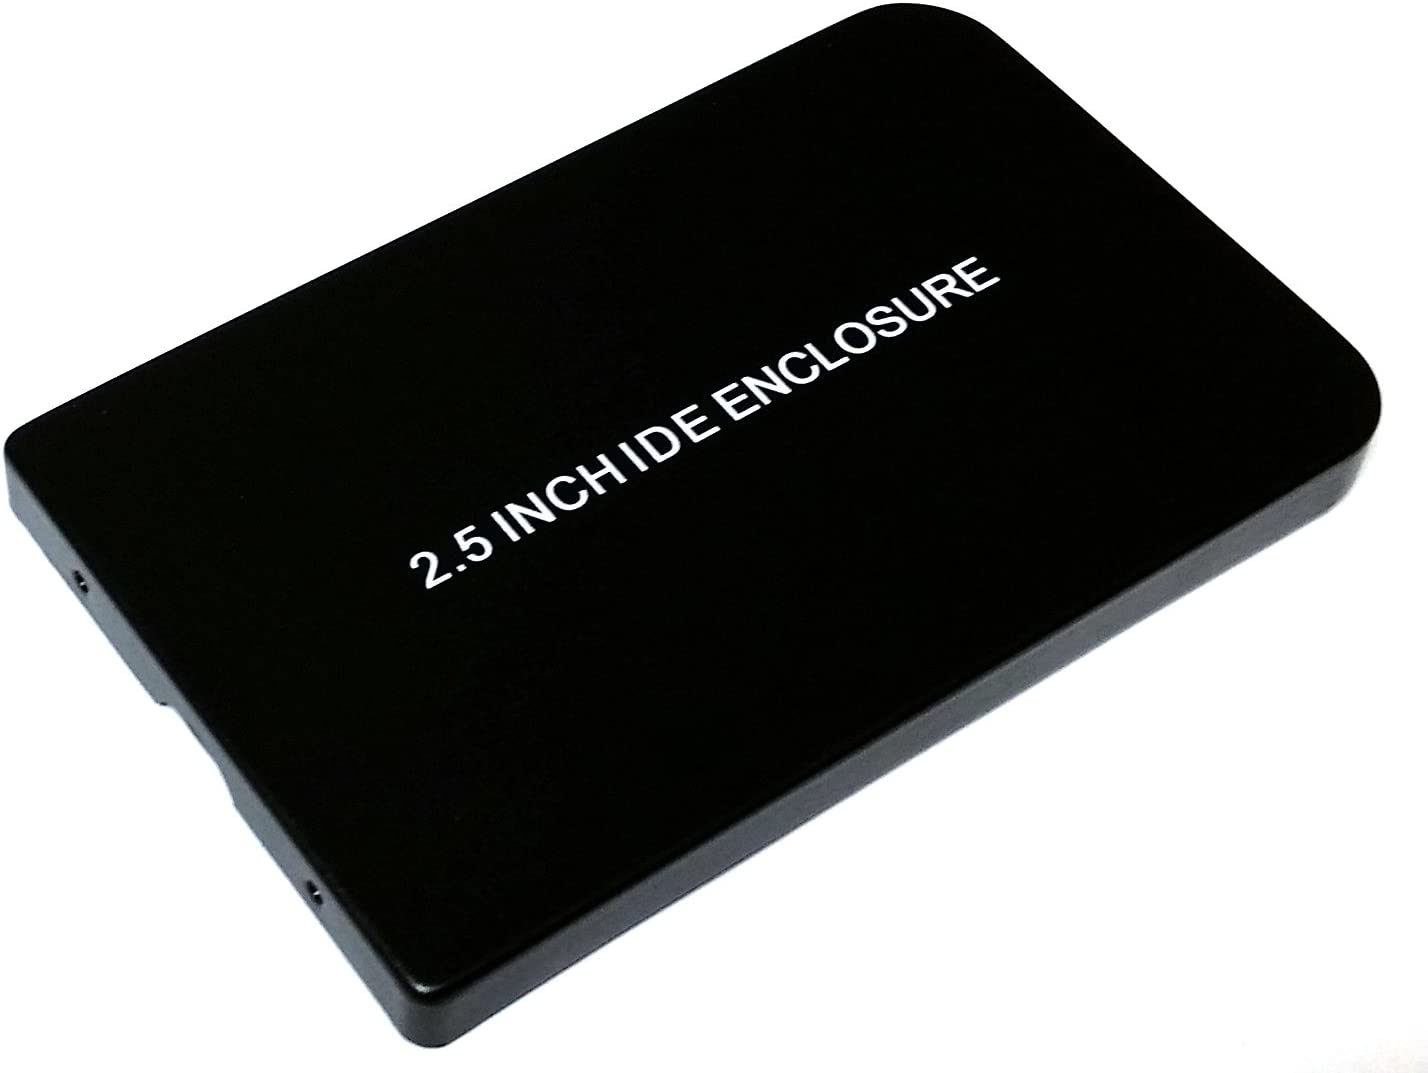 Importer520 USB 2.0 External 2.5-Inch IDE HDD Enclosure Case for Laptop Black